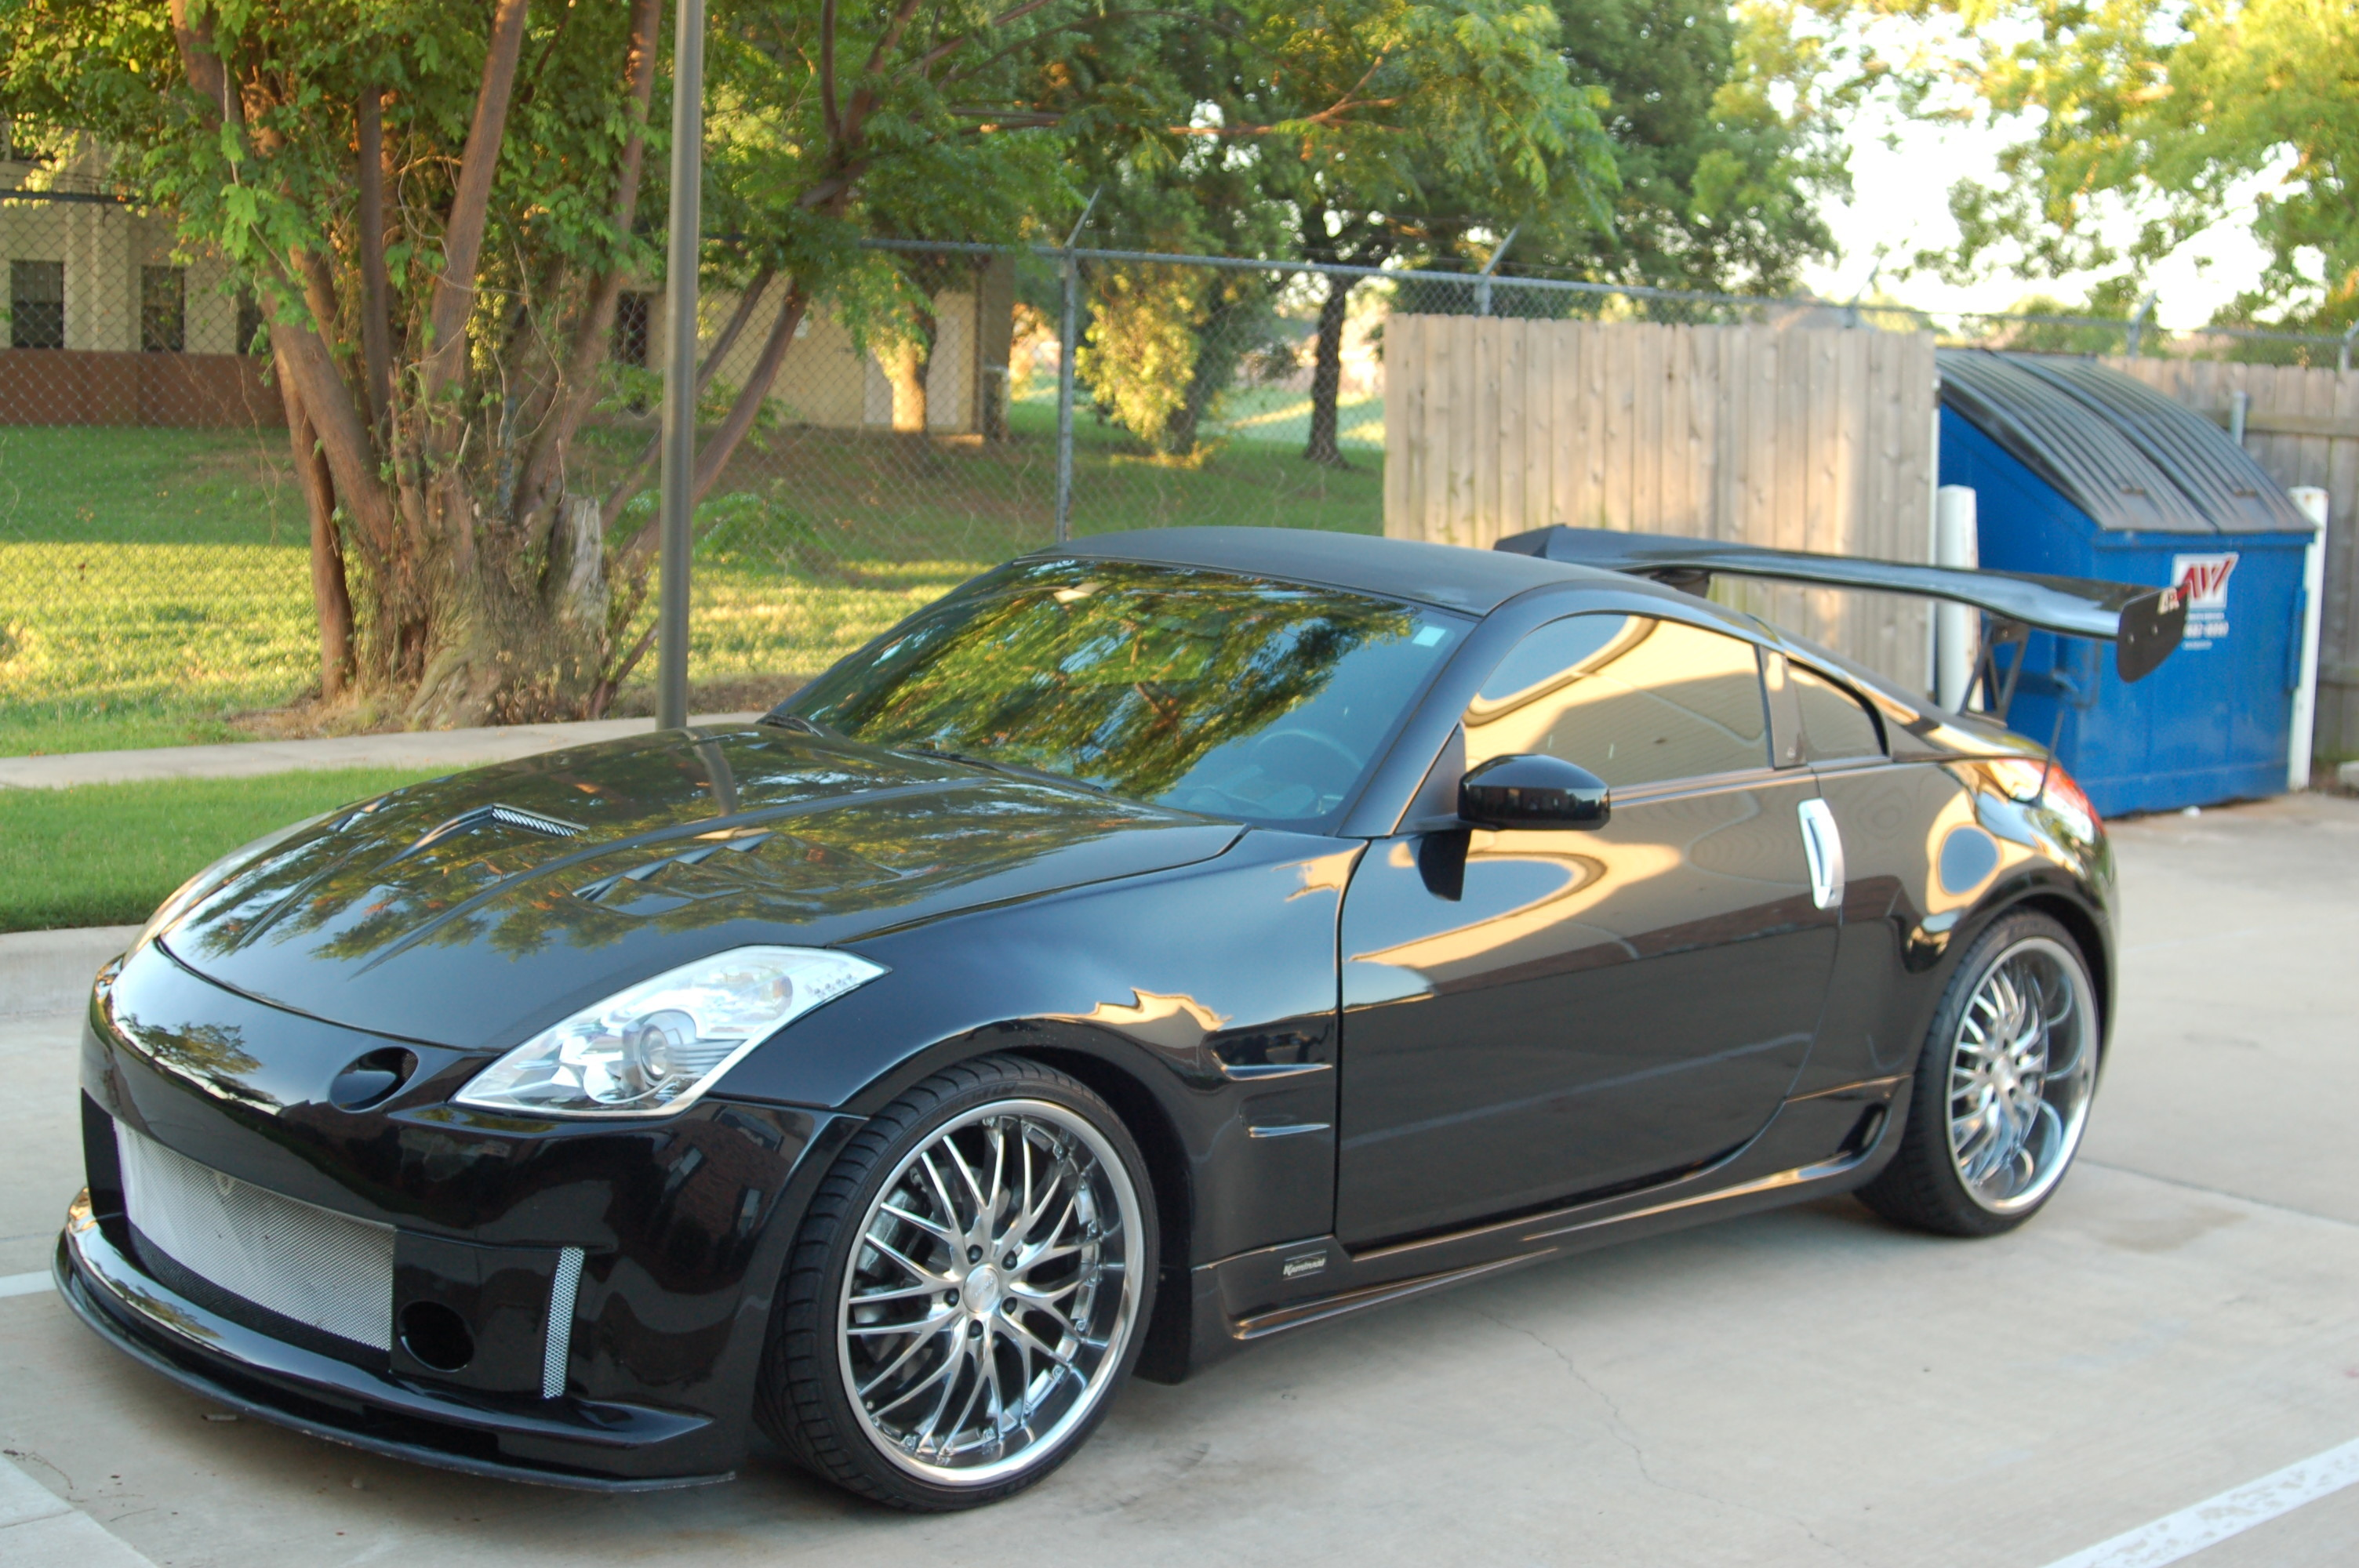 rockmanx 2006 nissan 350z specs photos modification info. Black Bedroom Furniture Sets. Home Design Ideas